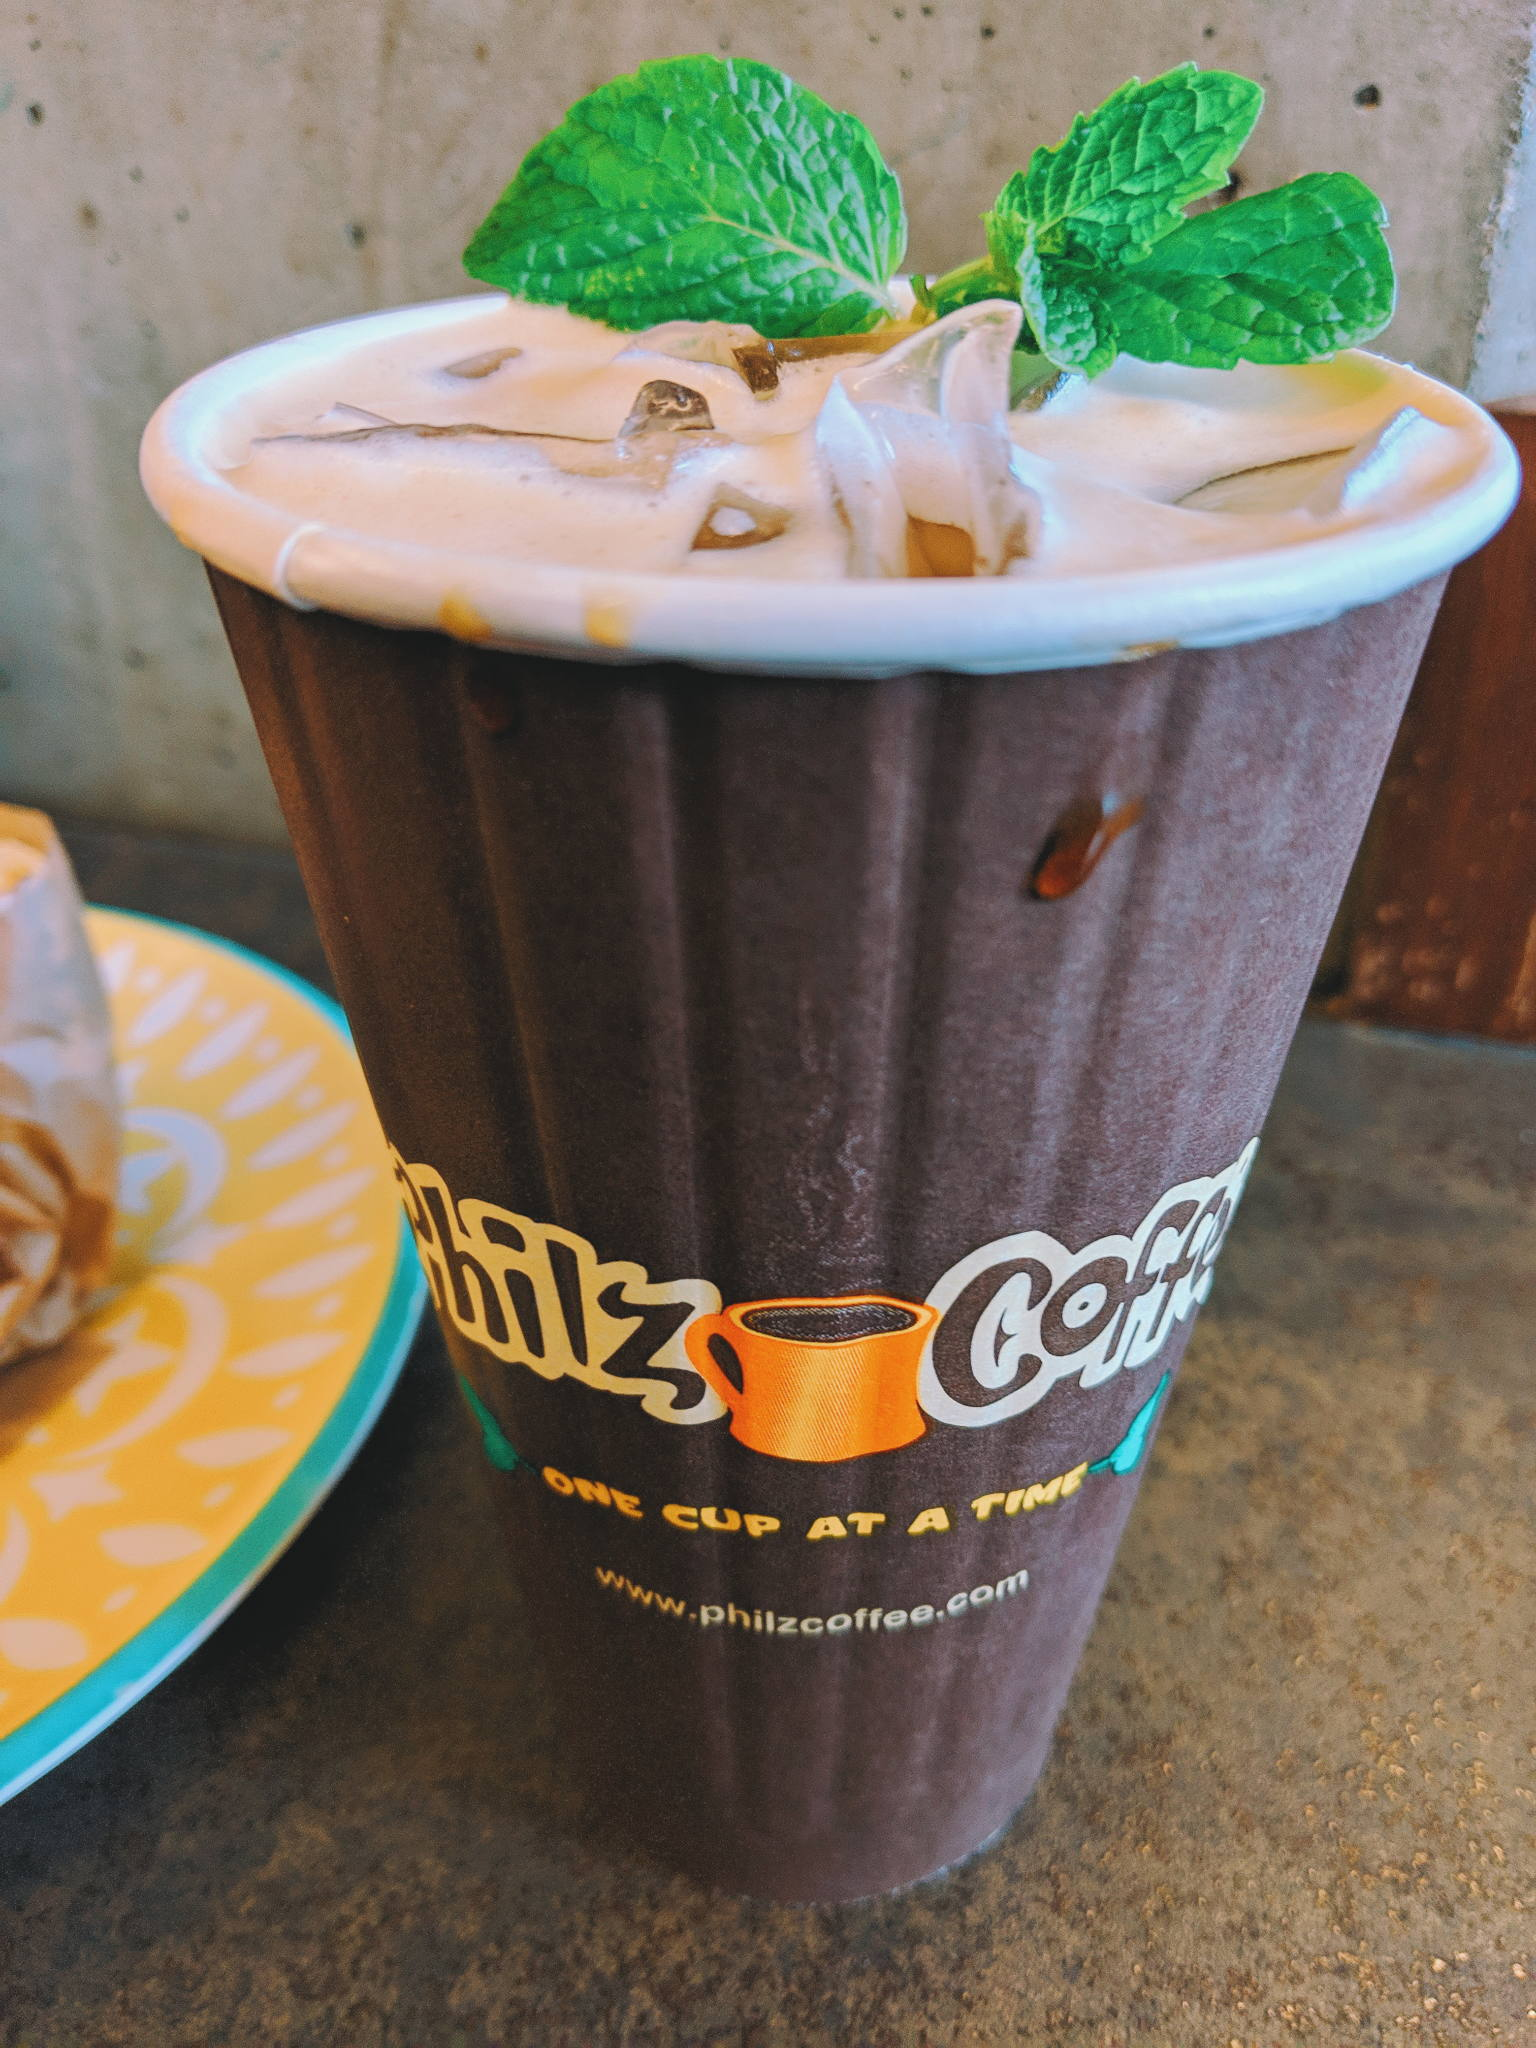 Philz Coffee santa monica